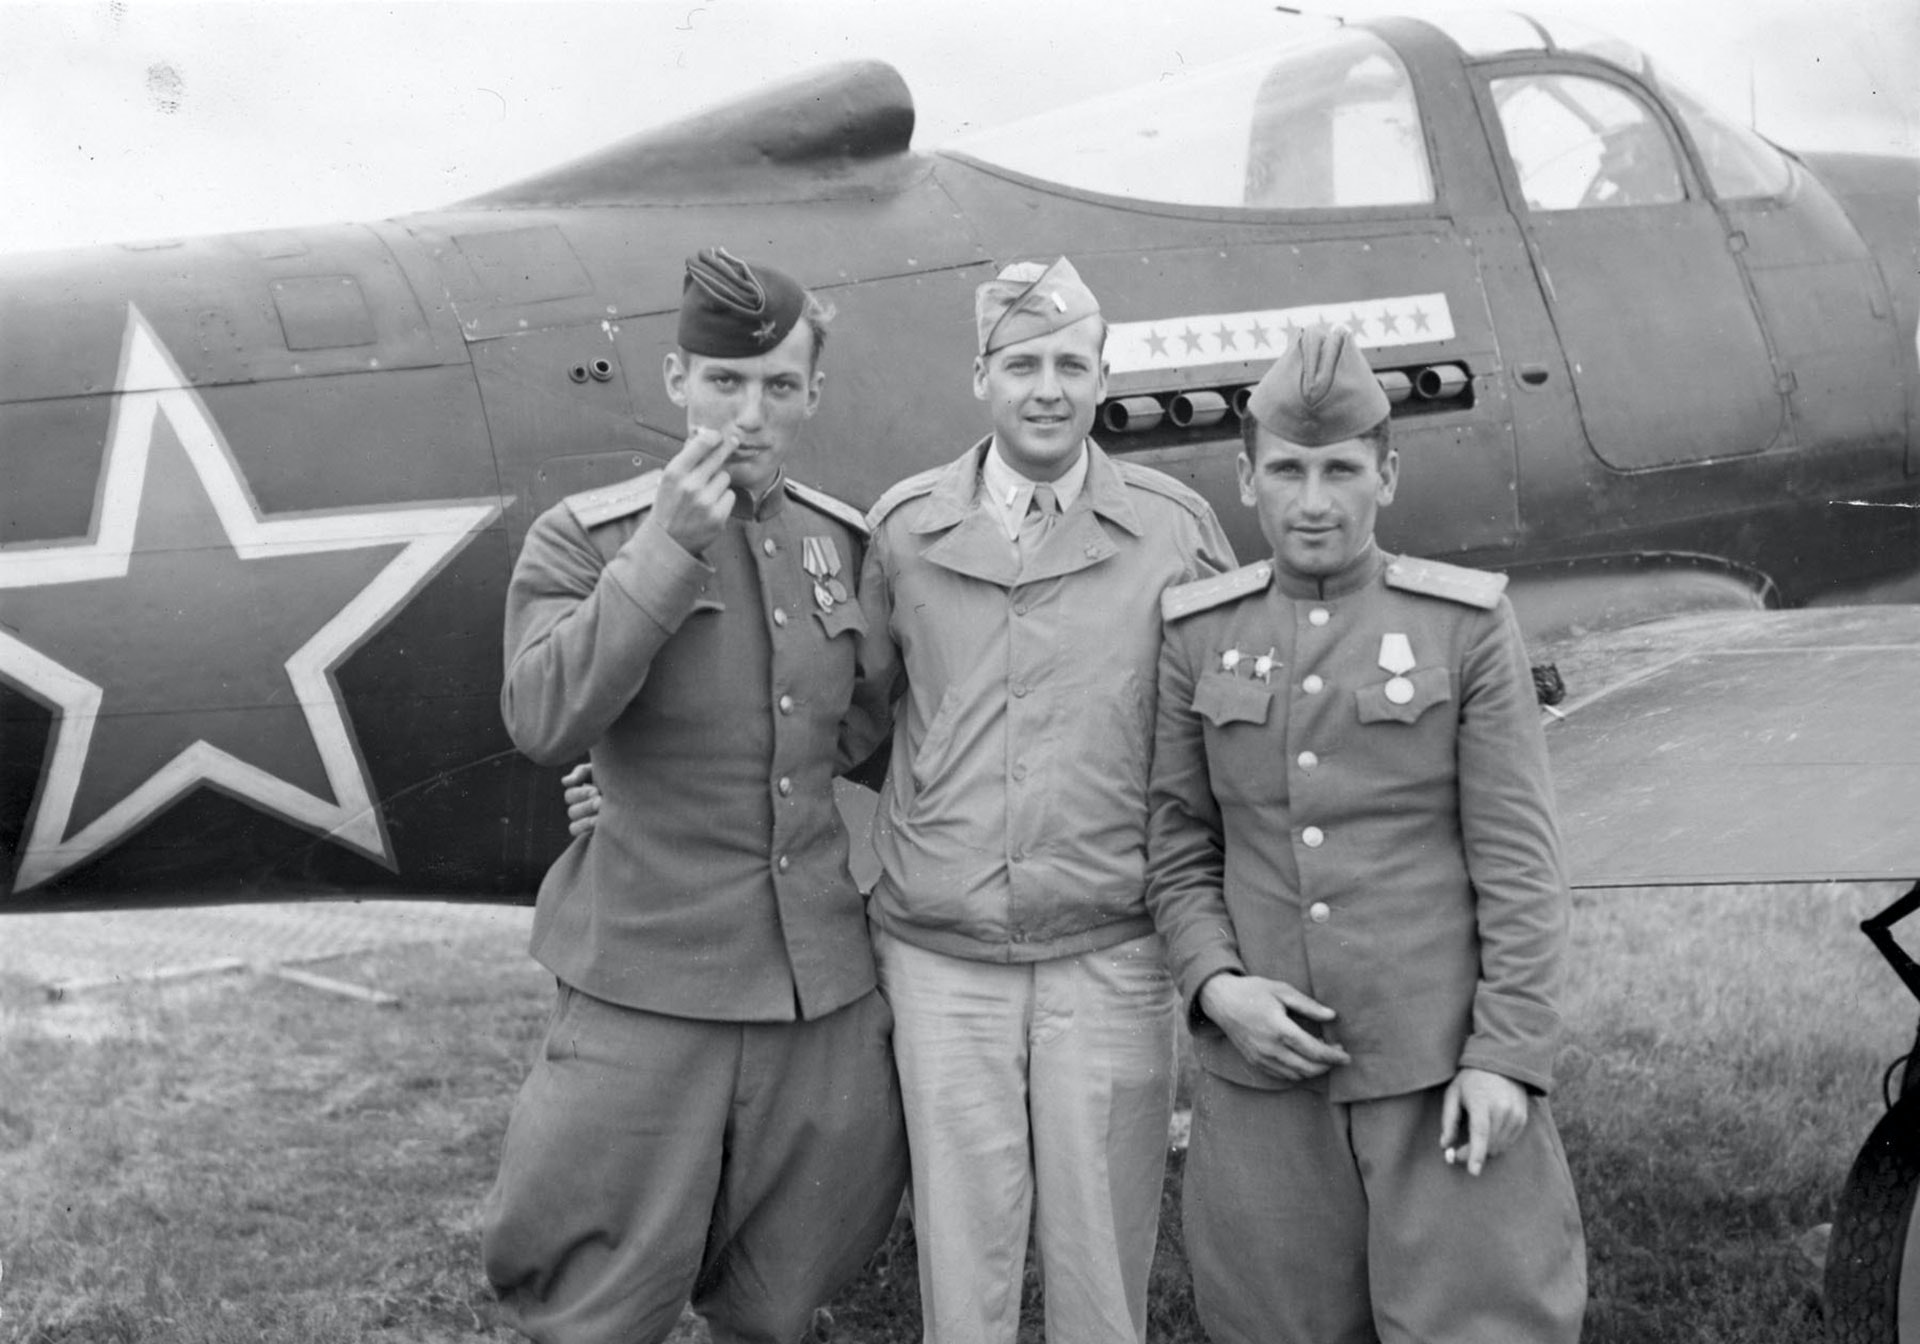 Andrea Hincerockur, a Russian pilot; Lt. Thompson Highfill of the 99th Bomb Ground; and Corzen Venzopkin, another Russia flier, pose behind a Soviet P-39